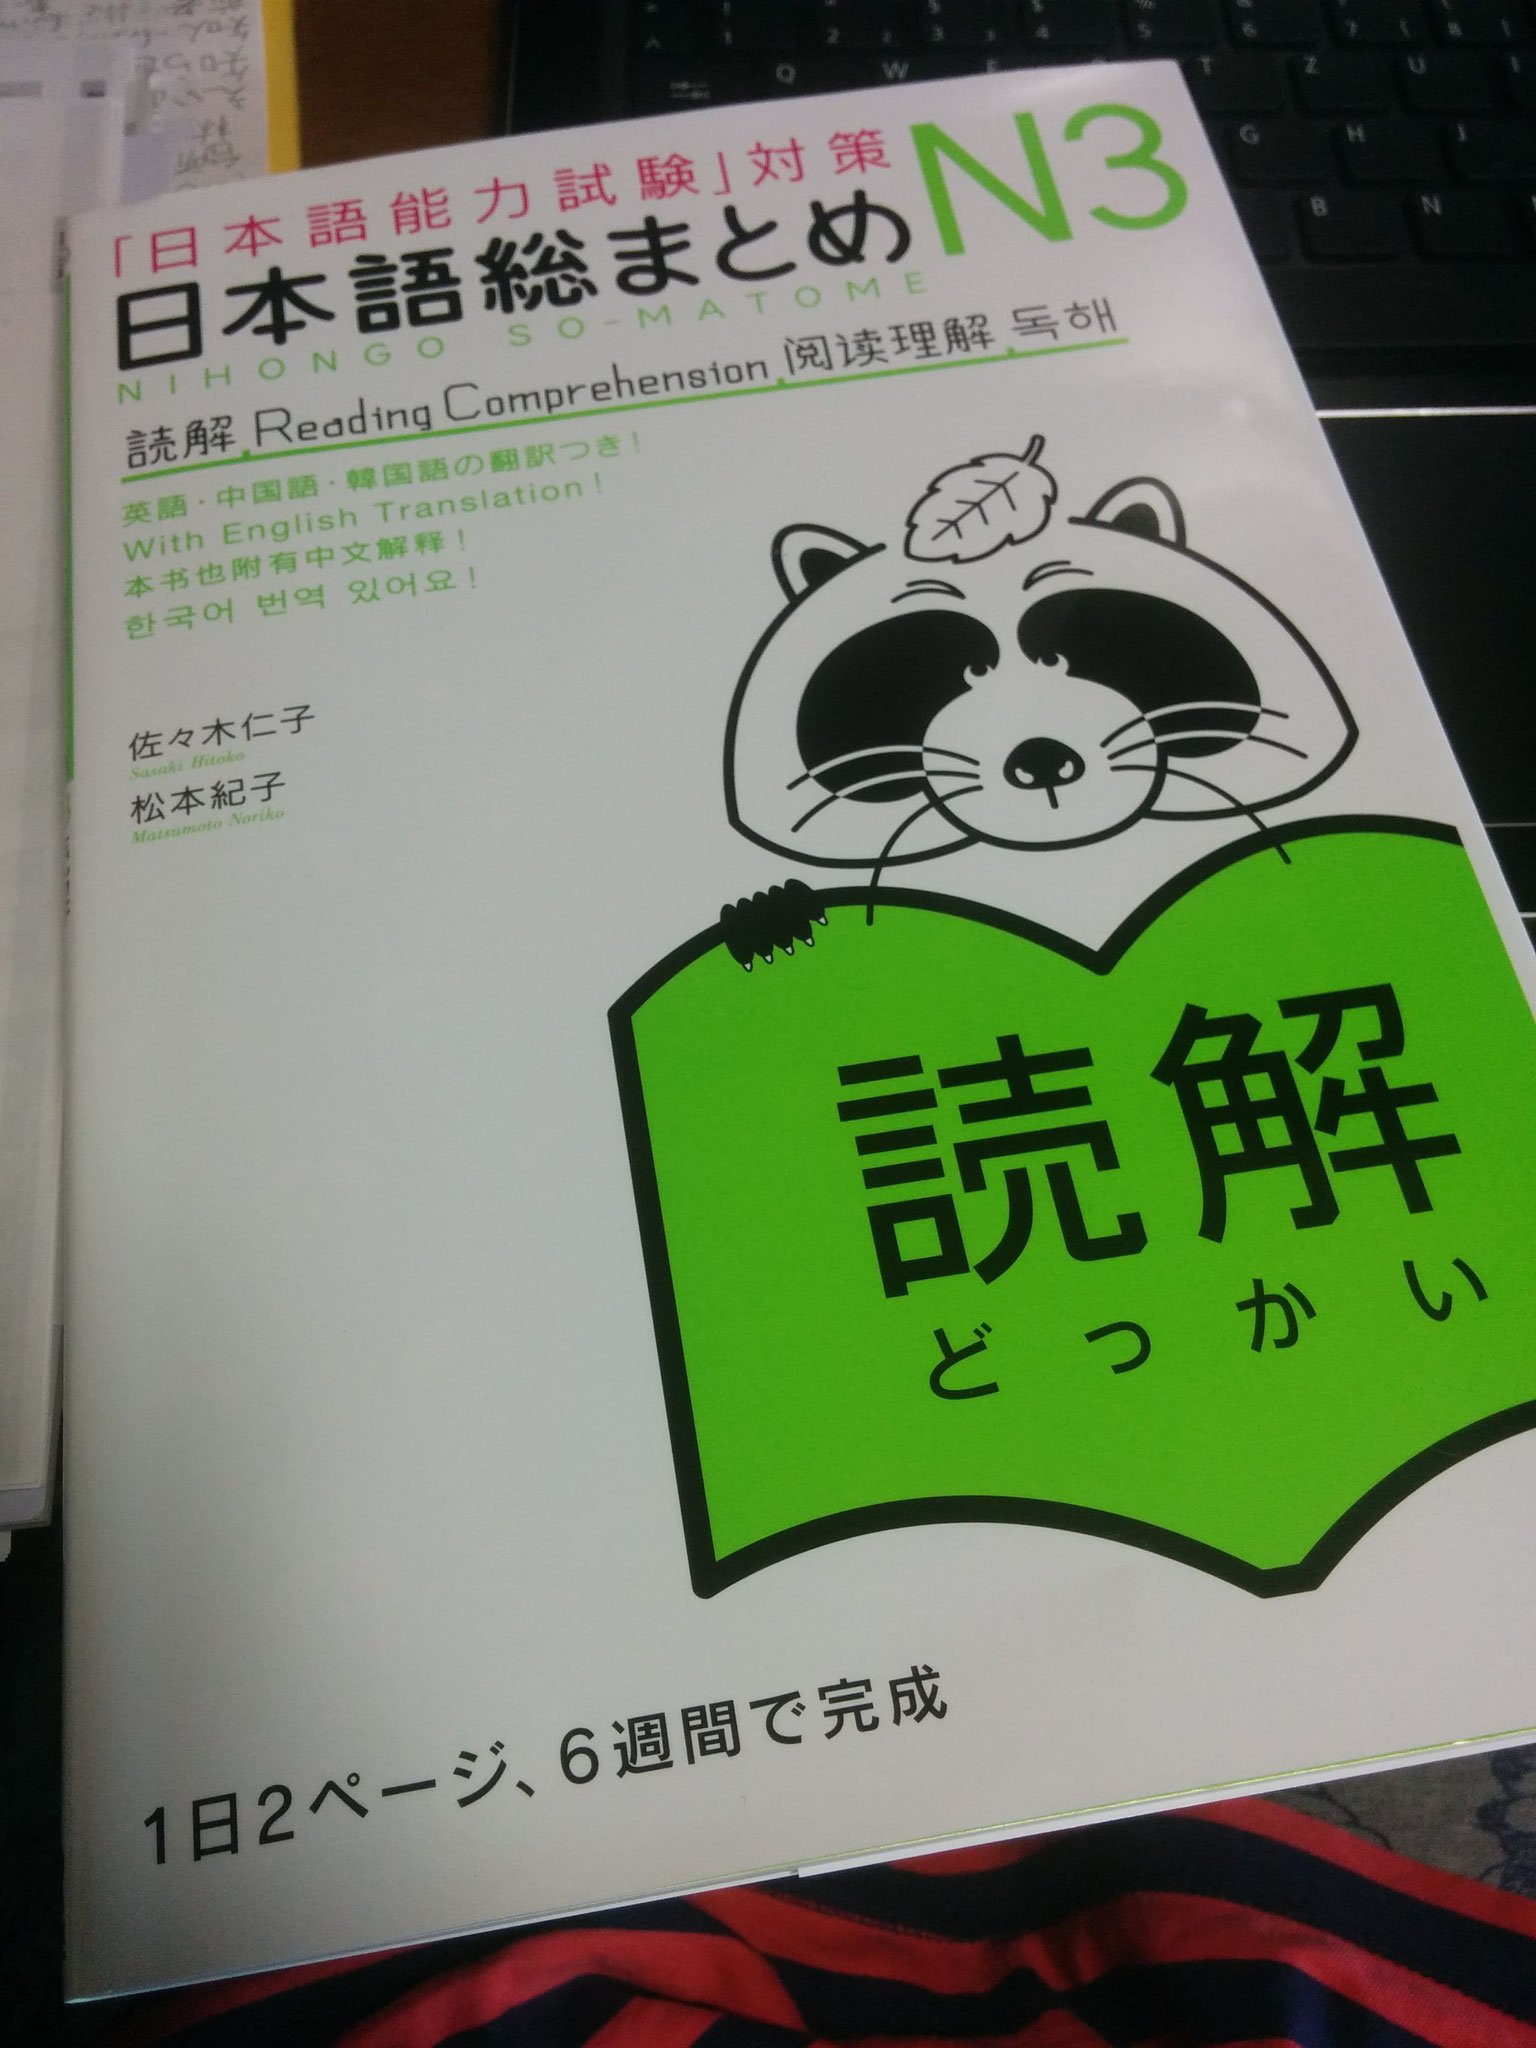 9 The N3 book I'm studying with (not exclusively)